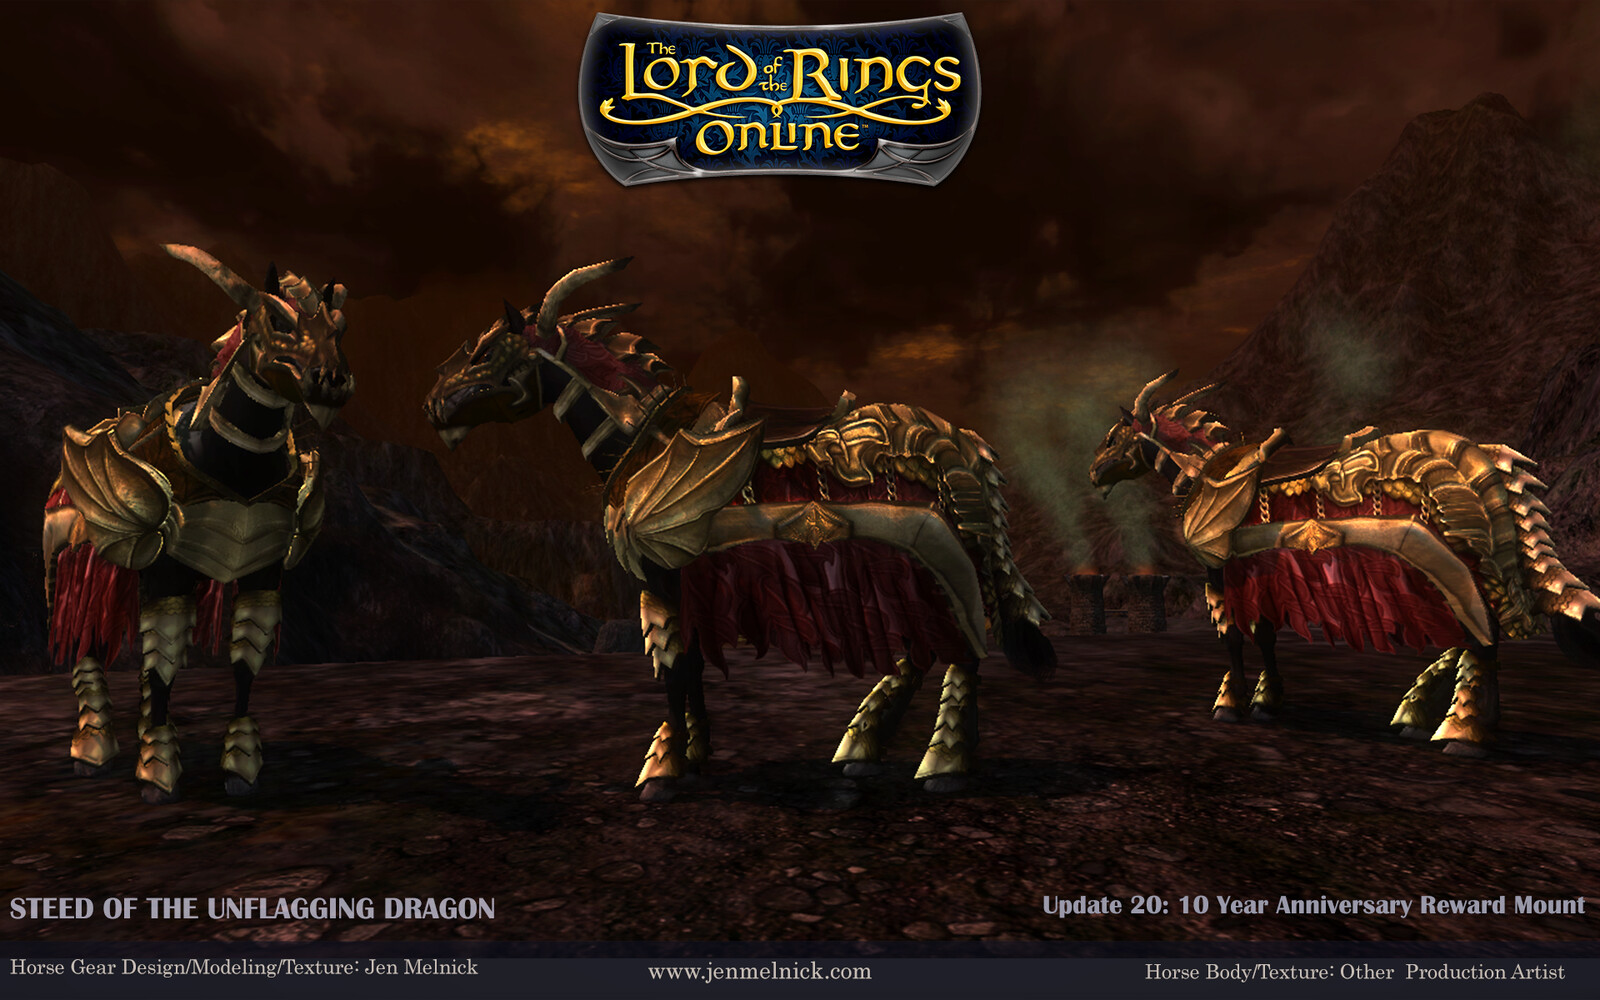 10 Year Anniversary Mount (2017) Steed of the Unflagging Dragon In-Game Screenshot